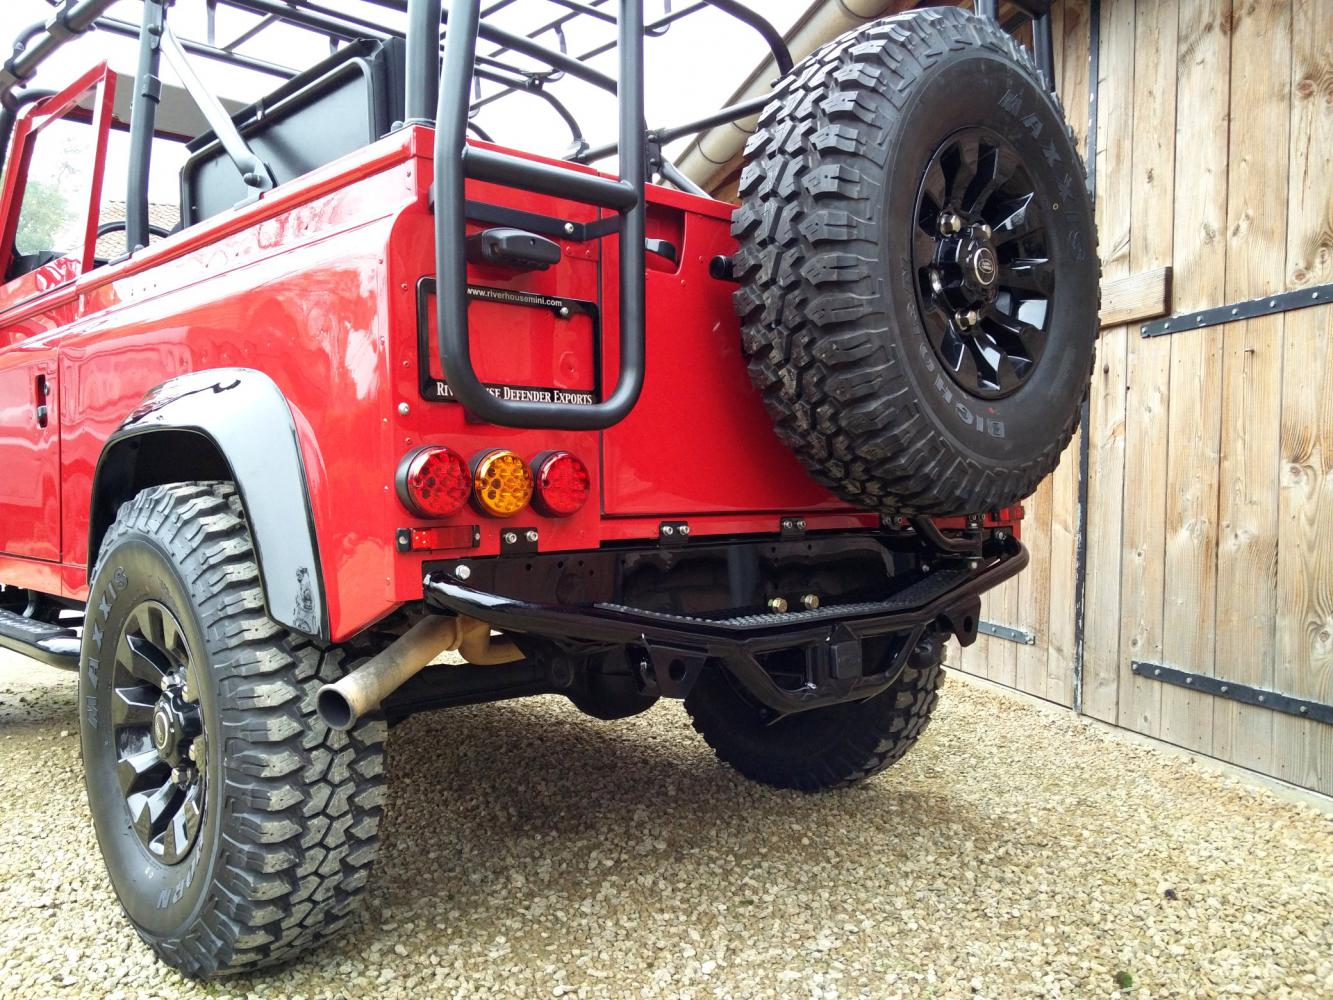 Click image for larger version  Name:1992 LR LHD Defender 90 Red 200 Tdi A day 15 rear step close low.jpg Views:54 Size:264.0 KB ID:323769